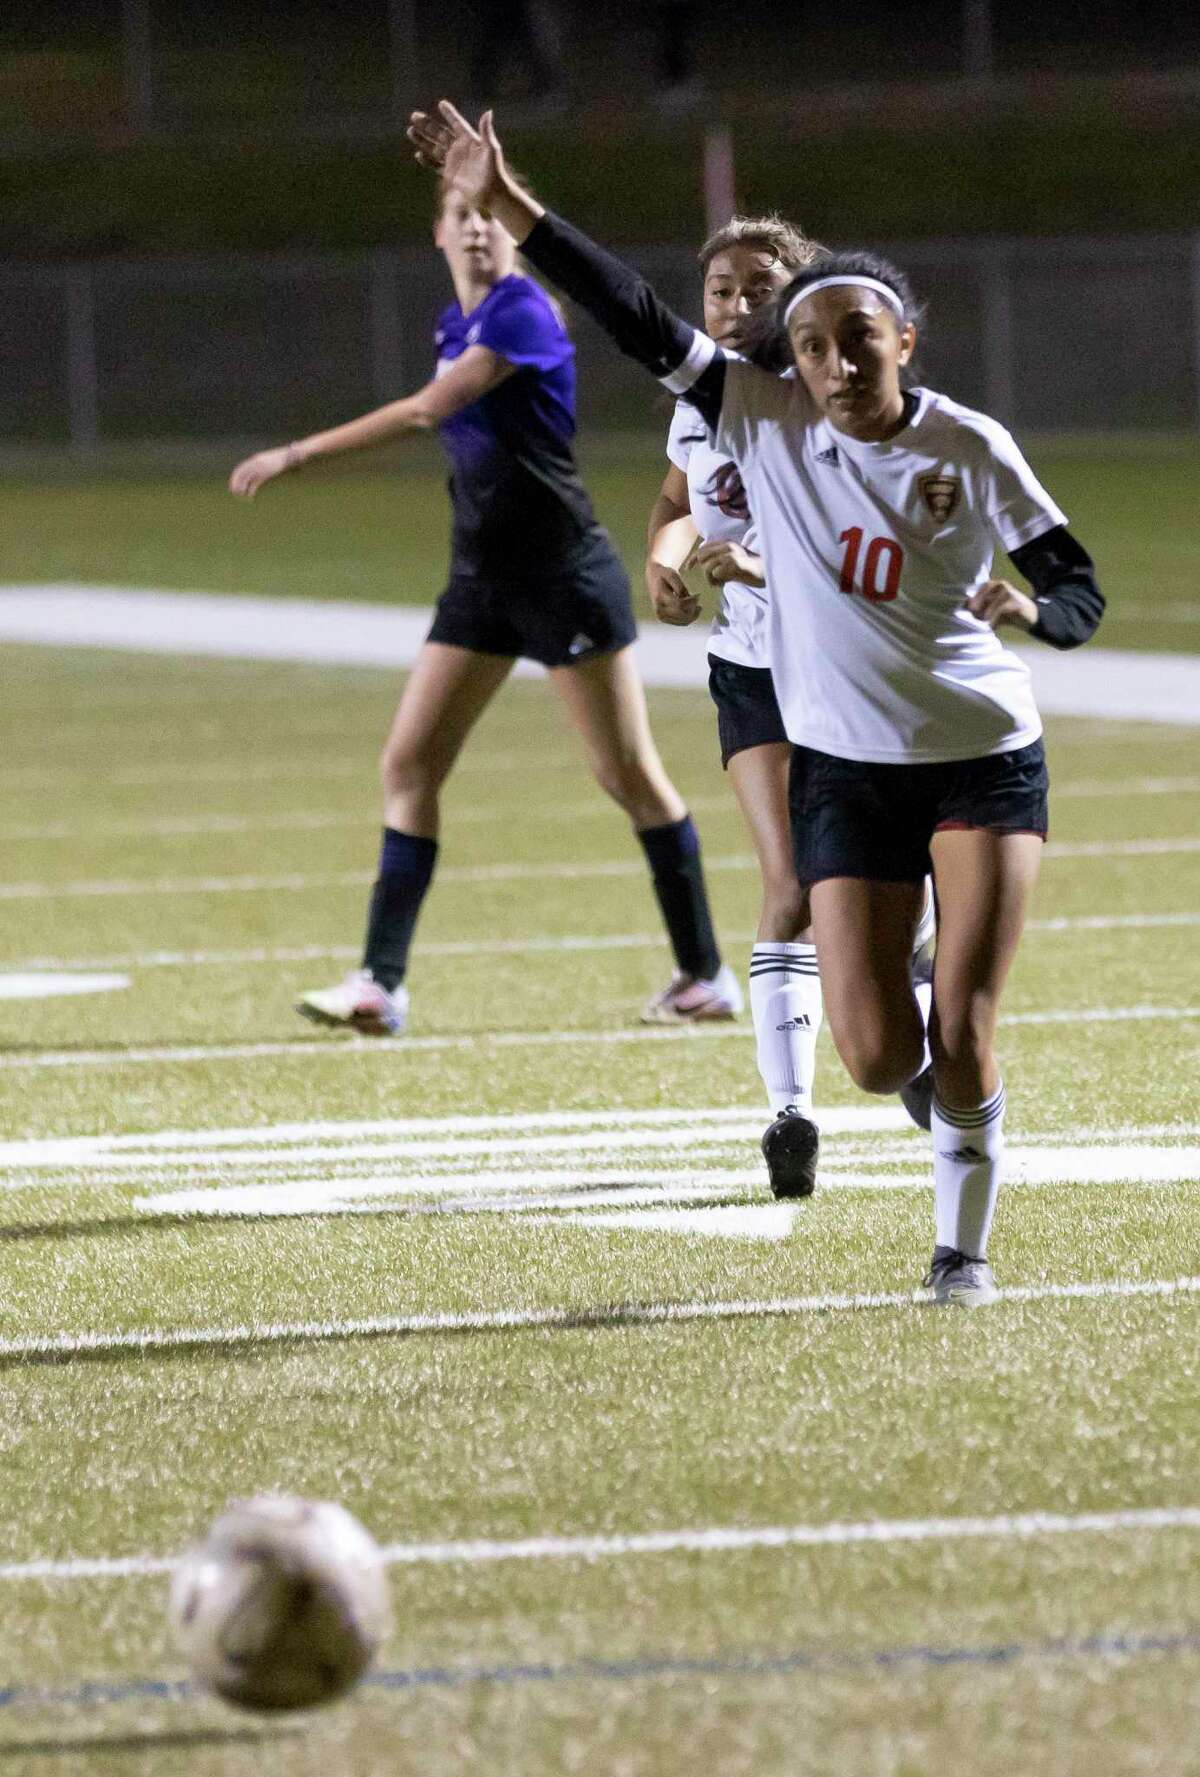 Caney Creek Julie Mendoza (10) calls for the goal keeper to grab a loose ball during the first period of a District 20-5A girls high school soccer match against Montgomery at Montgomery High School, Tuesday, Jan. 26, 2021, in Montgomery.